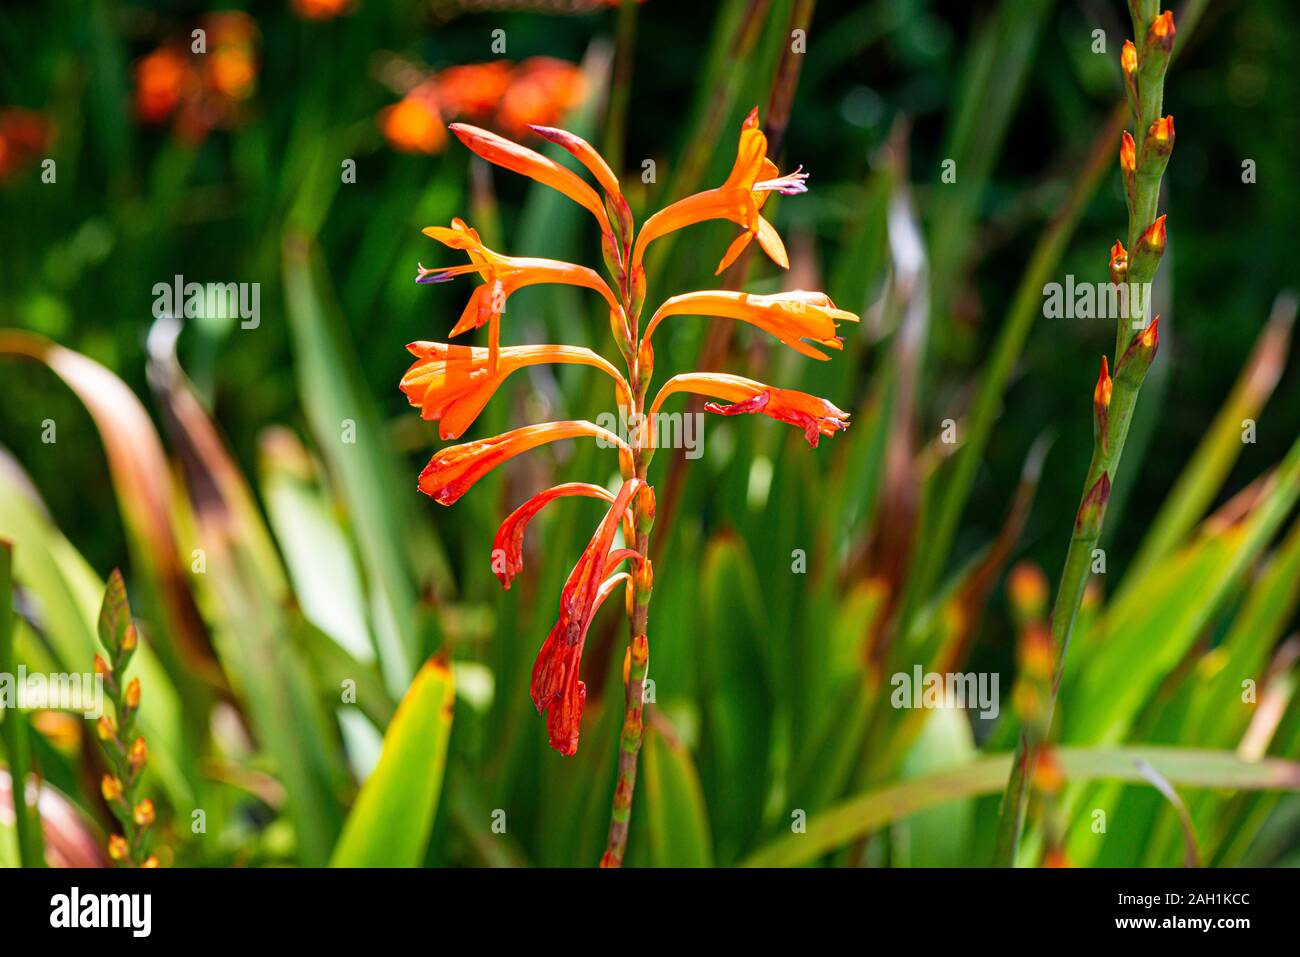 25 Orange Watsonia High Resolution Stock Photography and Images   Alamy